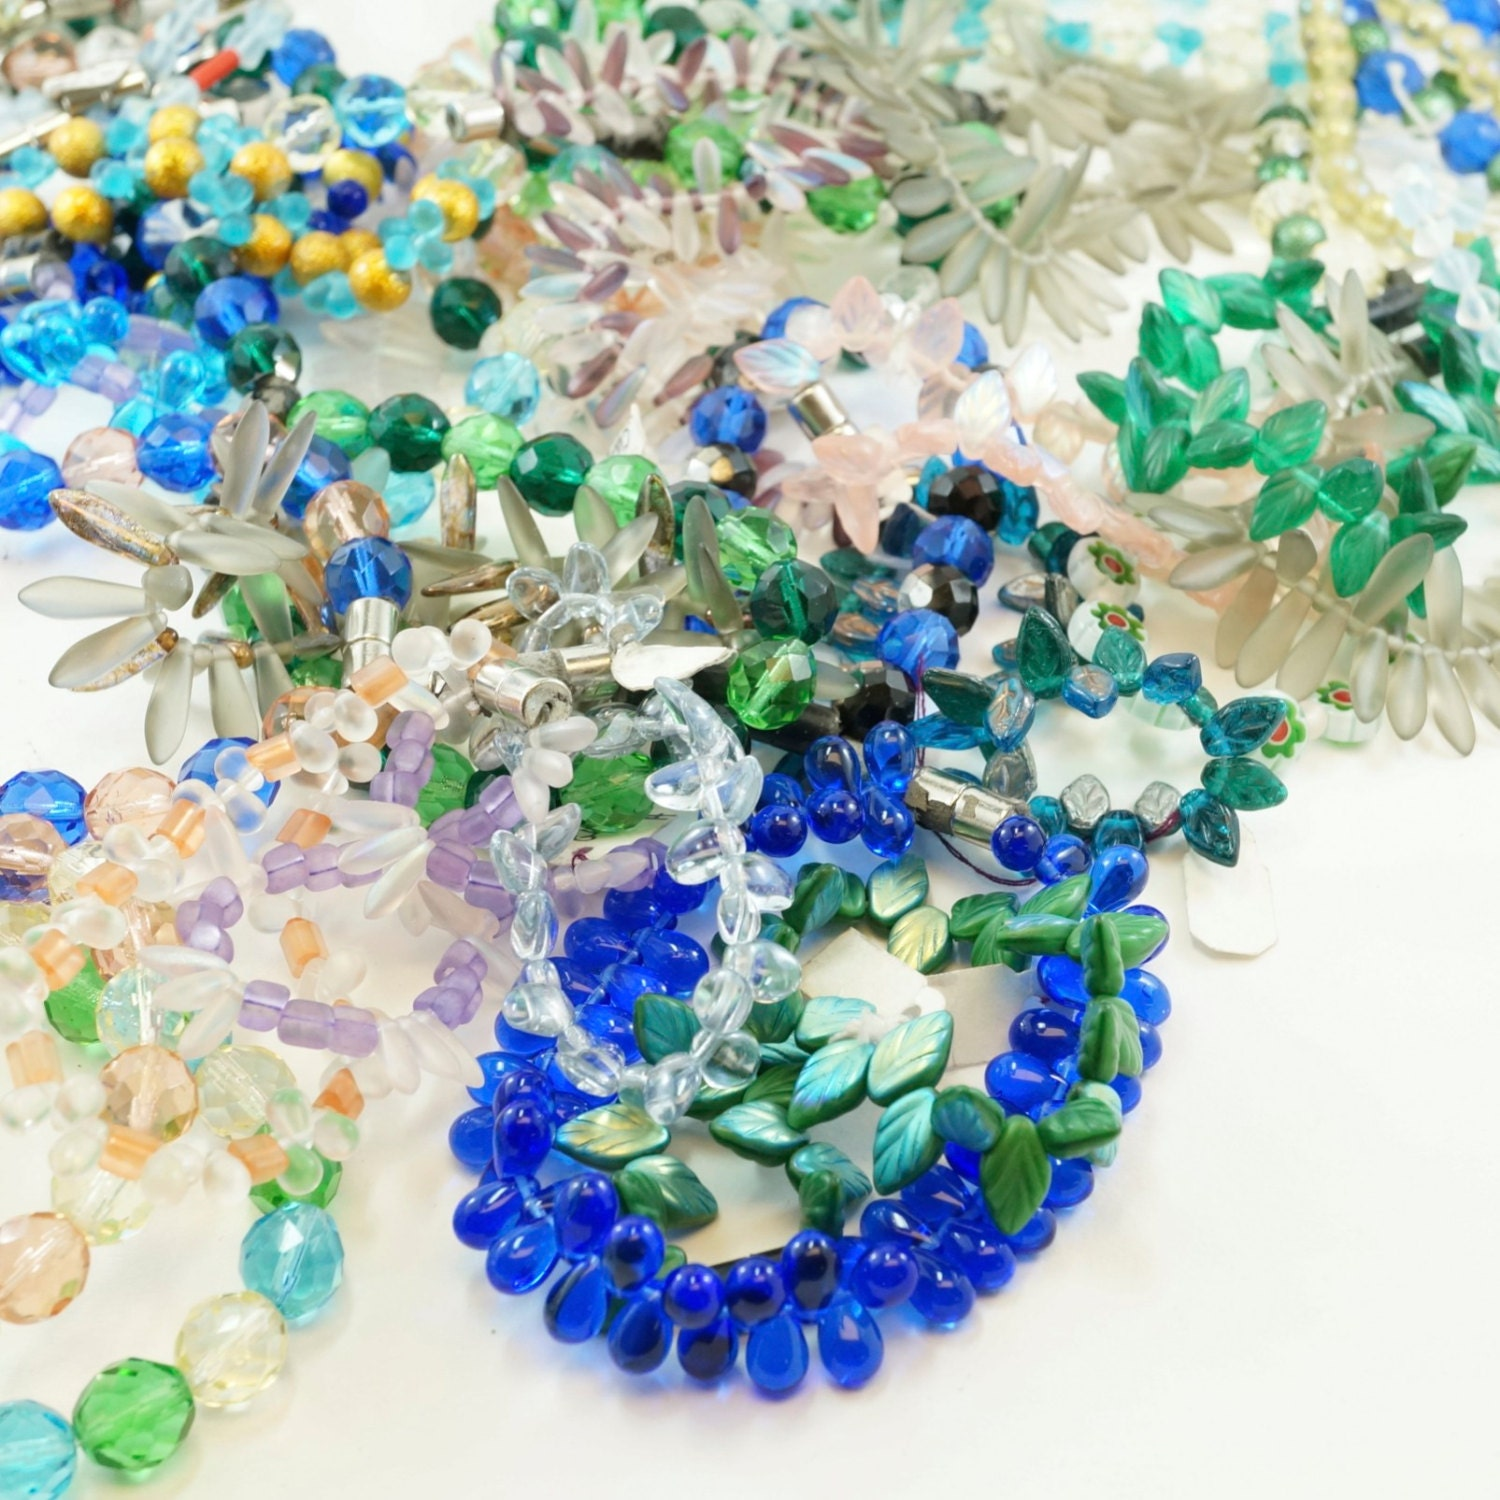 Craft beads in bulk - Sold By Partsforyou